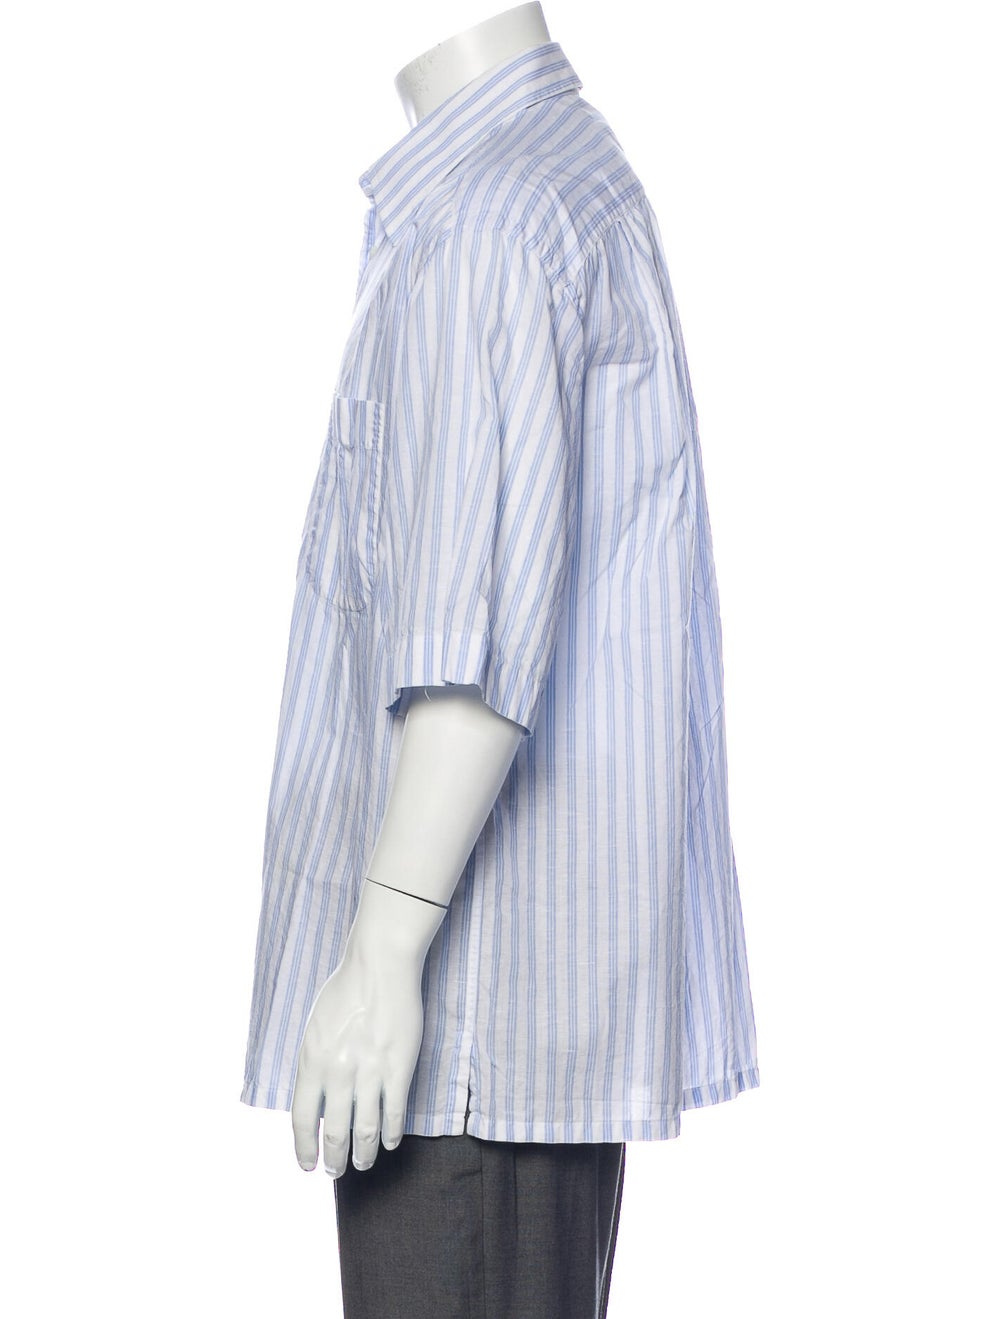 Brioni Striped Short Sleeve Shirt Blue - image 2